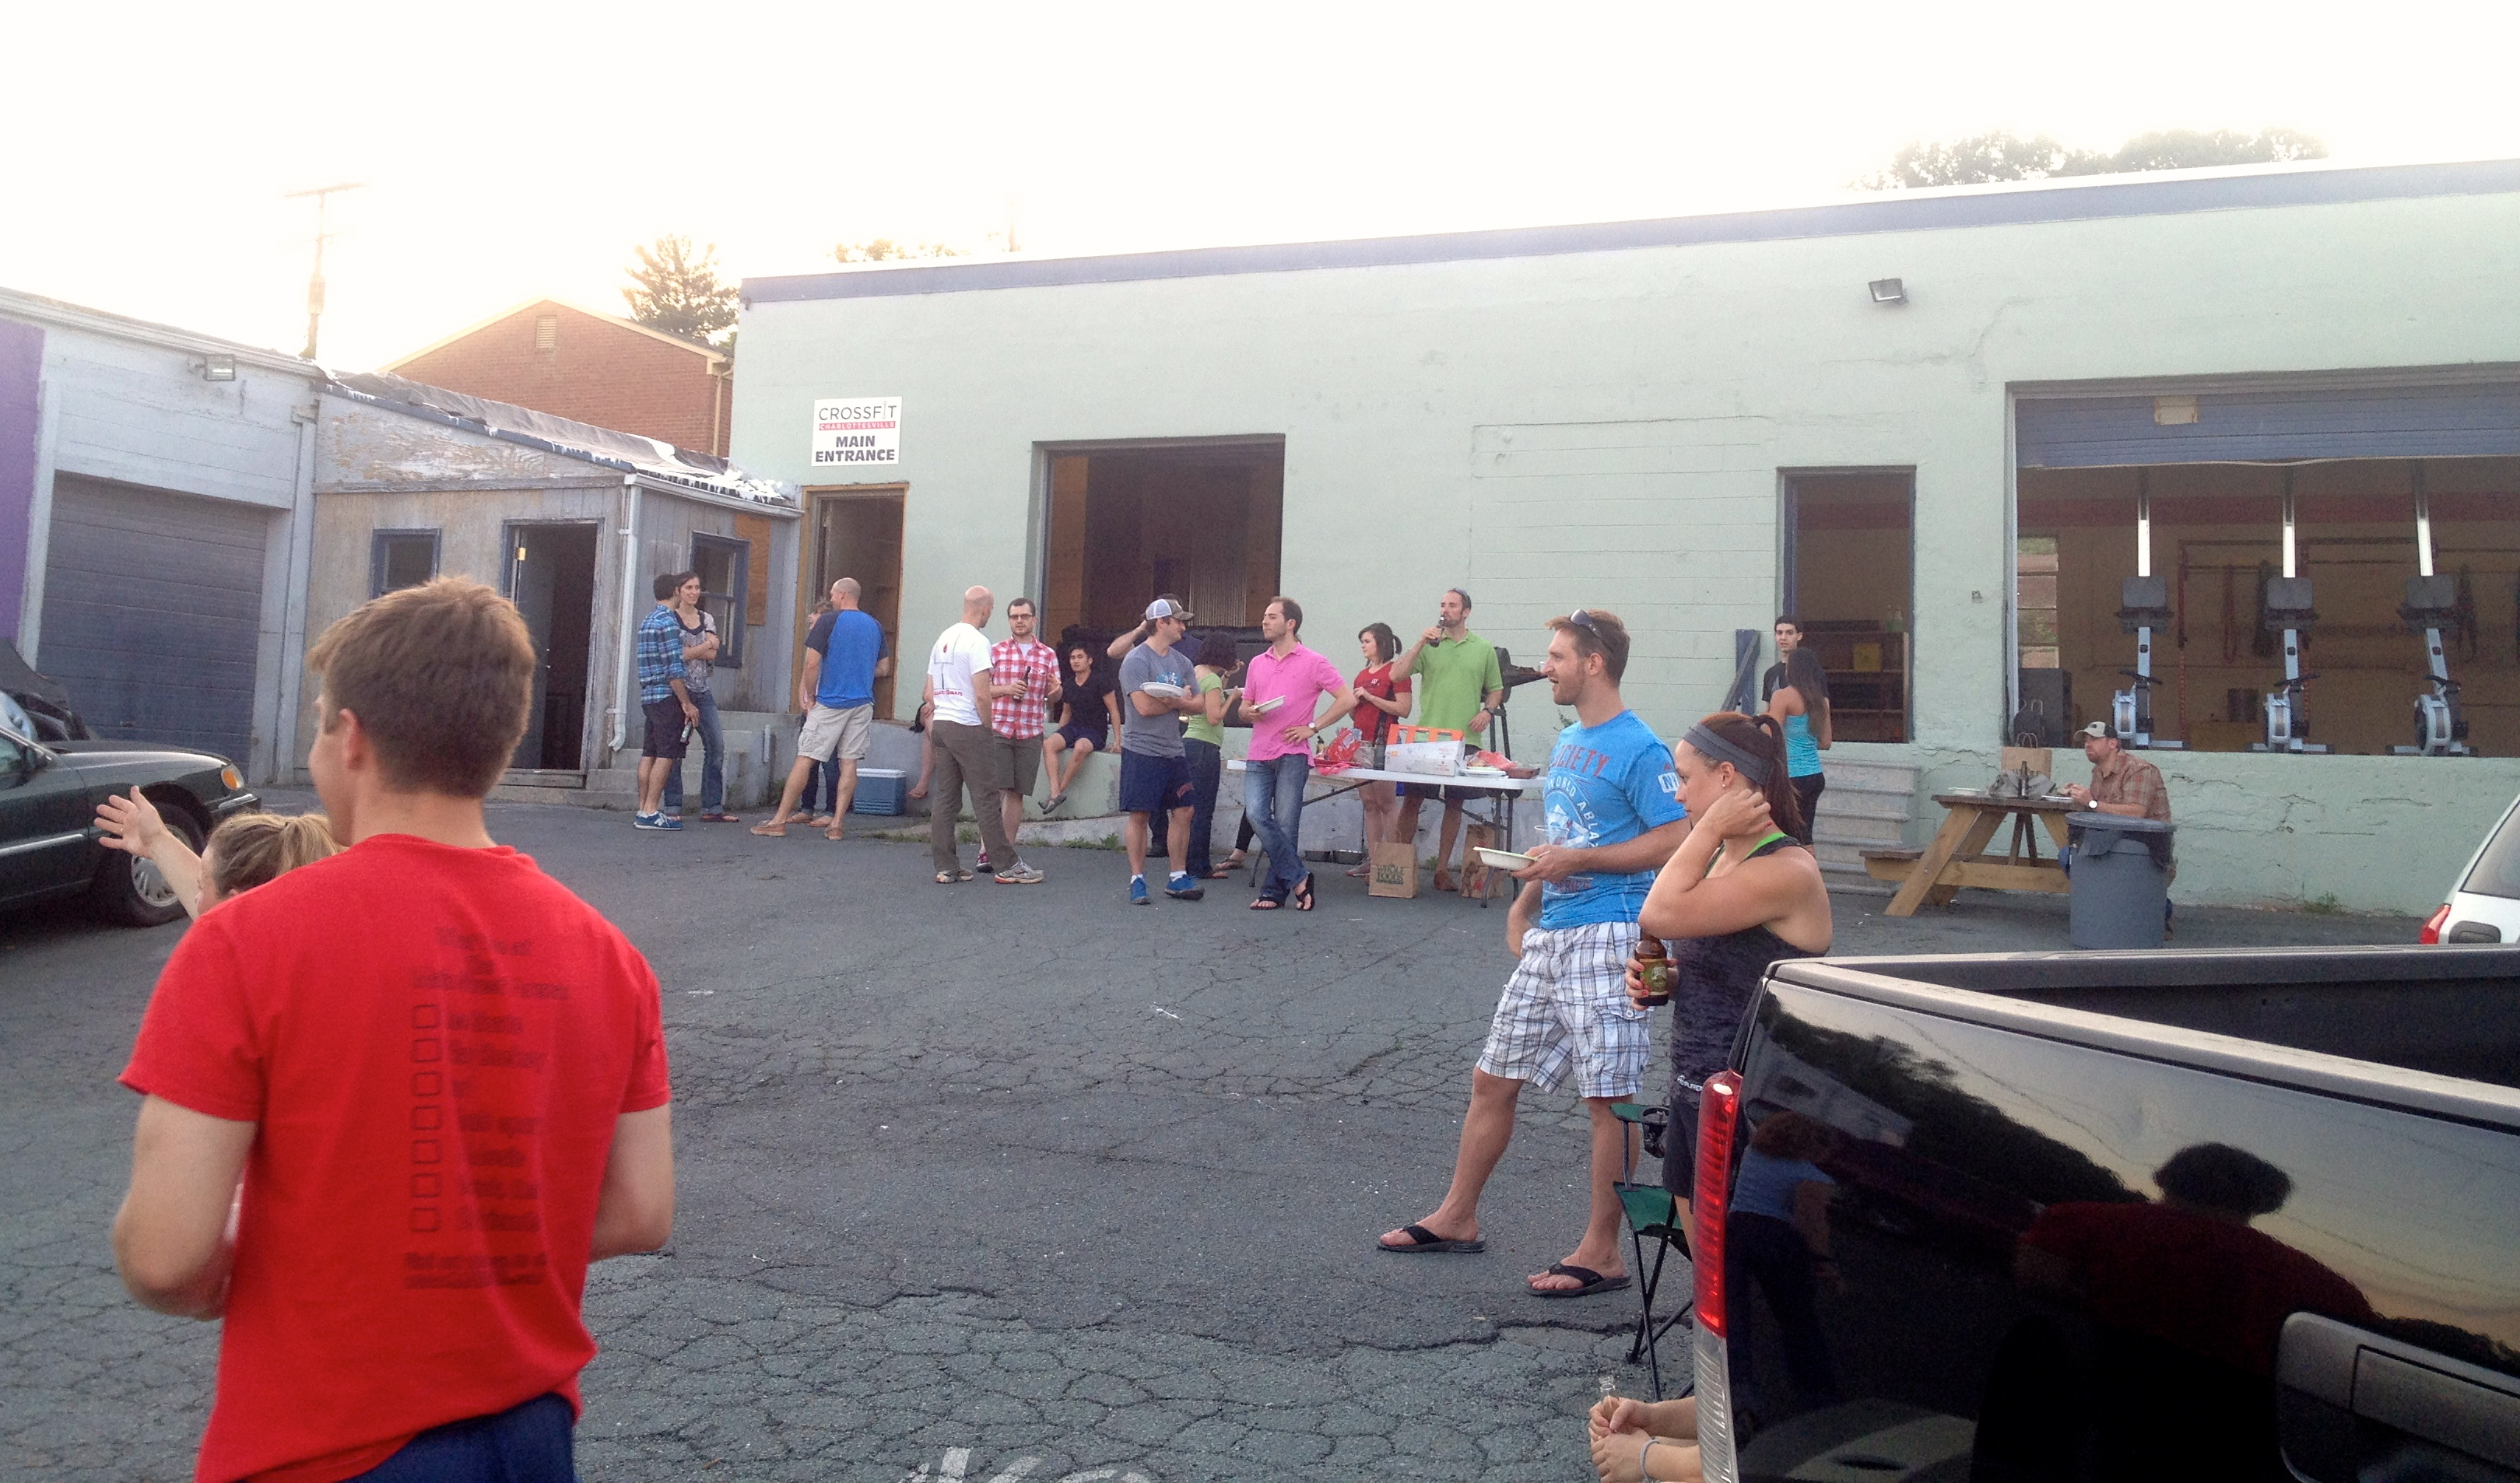 Awesome turnout at the BBQ this past Friday!